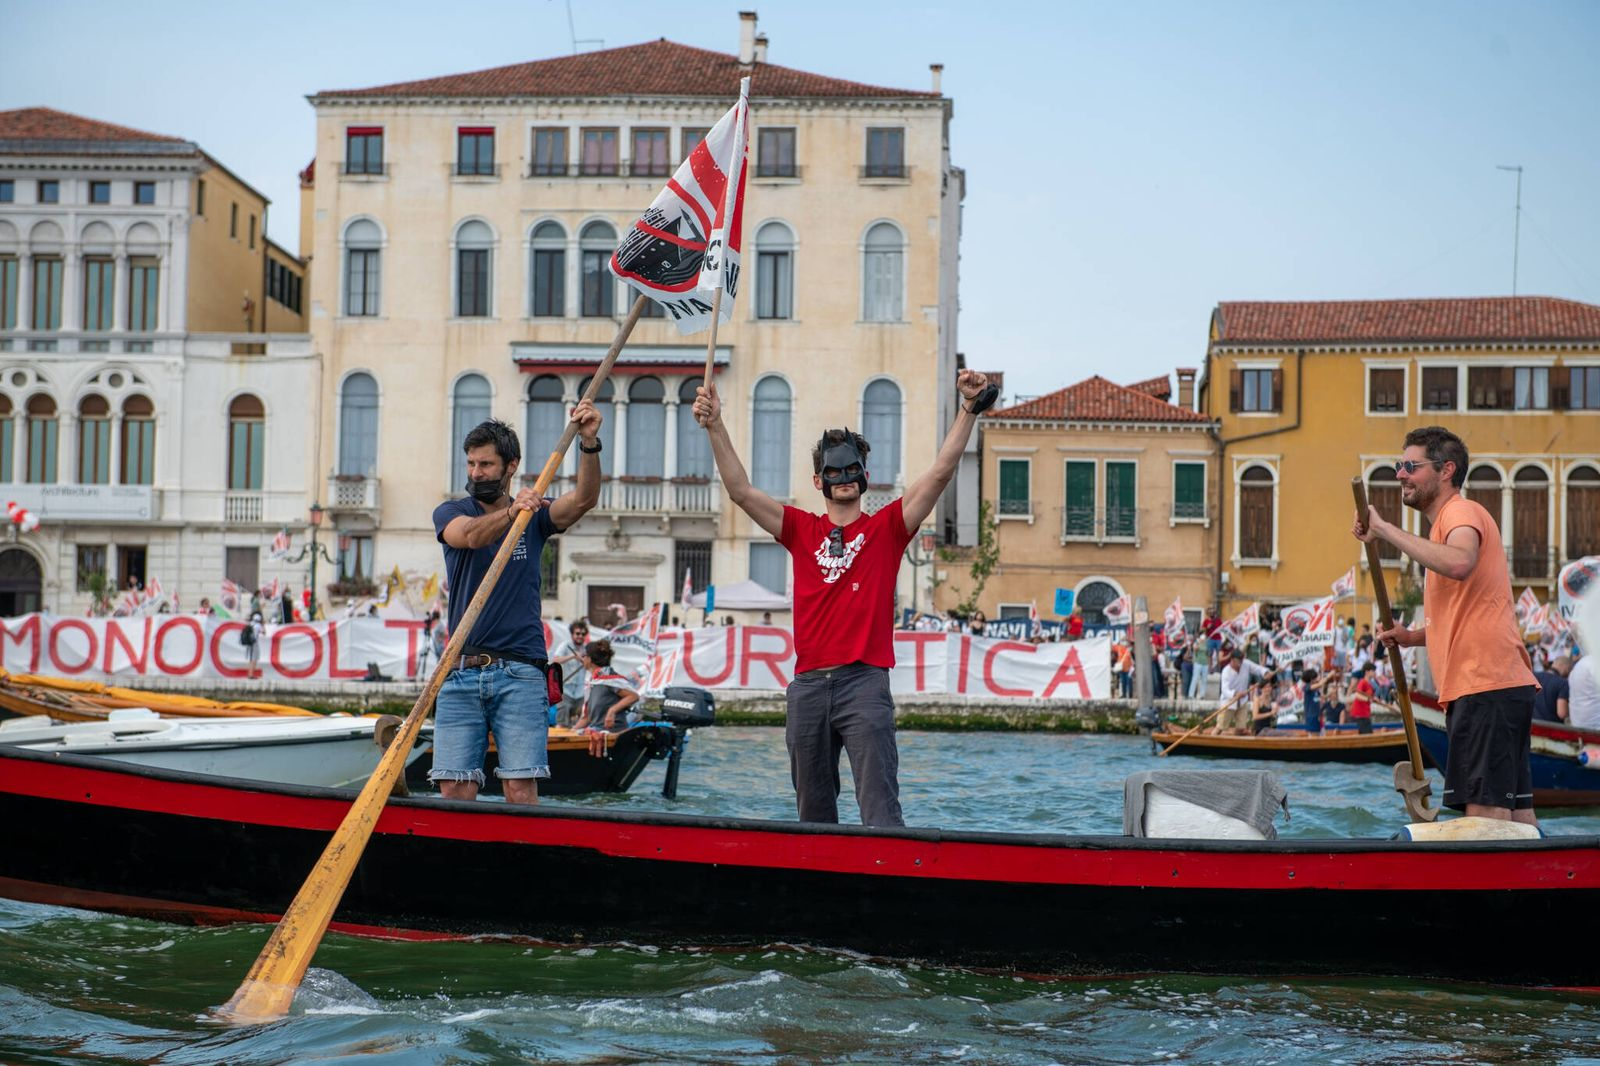 Protest Against Giant Cruise Ships People demonstrating on boats against the passage of the big ships in Venice, in Ven